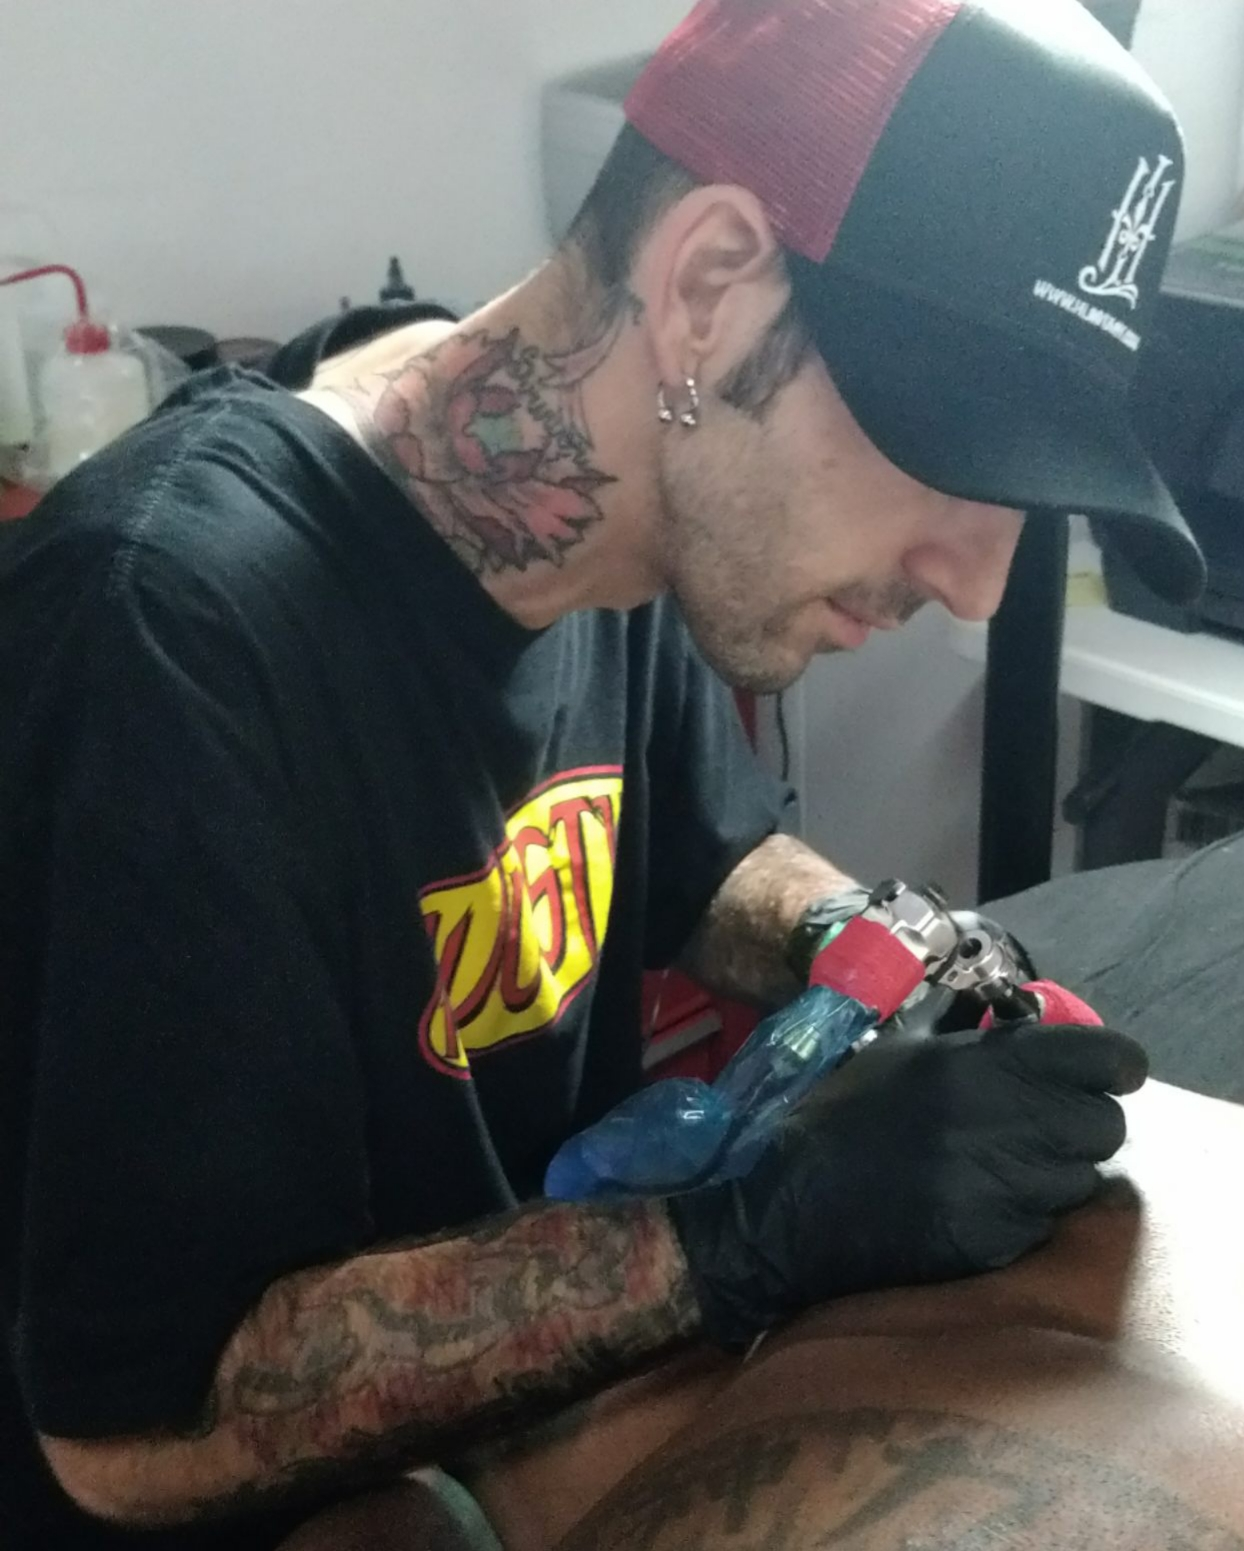 Jeff Lively - Jeff has been tattooing since 2013. He loves the bold lines and bright colors of new school tattoos but also enjoys black and grey as well as other styles. Click his photo to see more of his work!